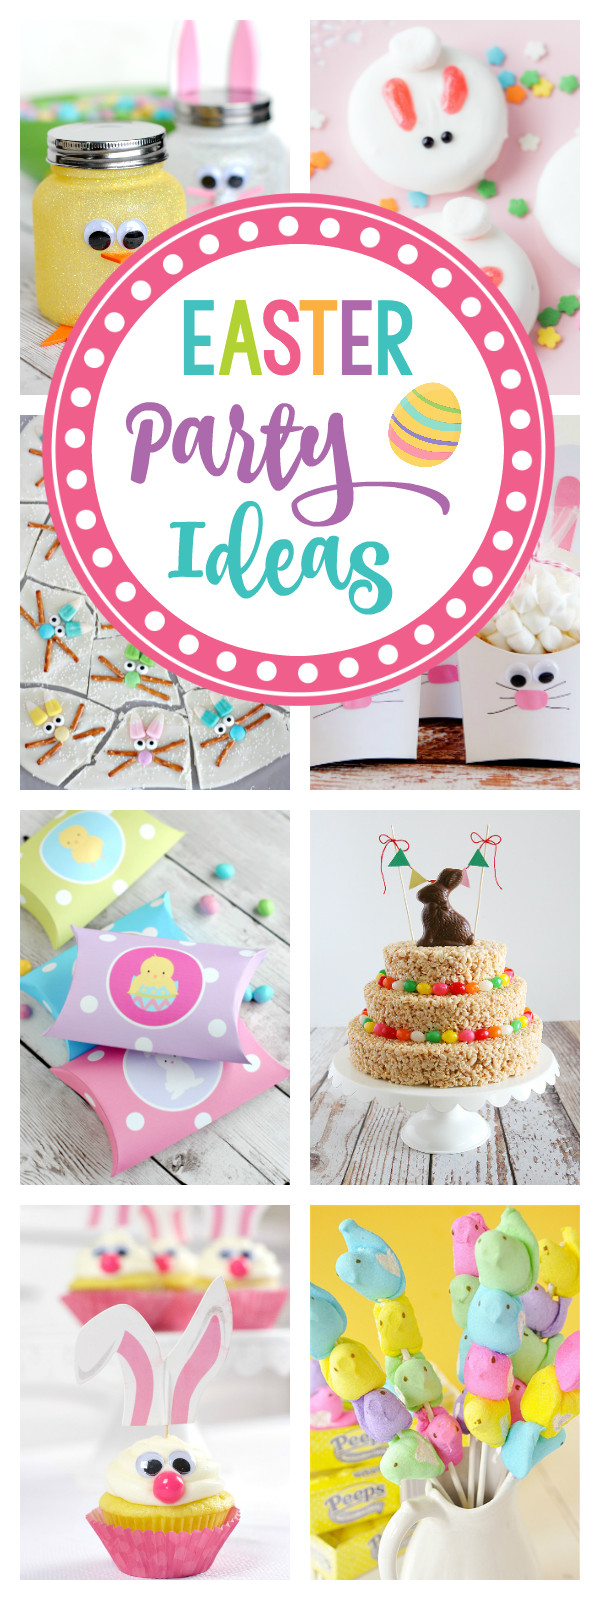 Easter Party Ideas Children  25 Fun Easter Party Ideas for Kids – Fun Squared